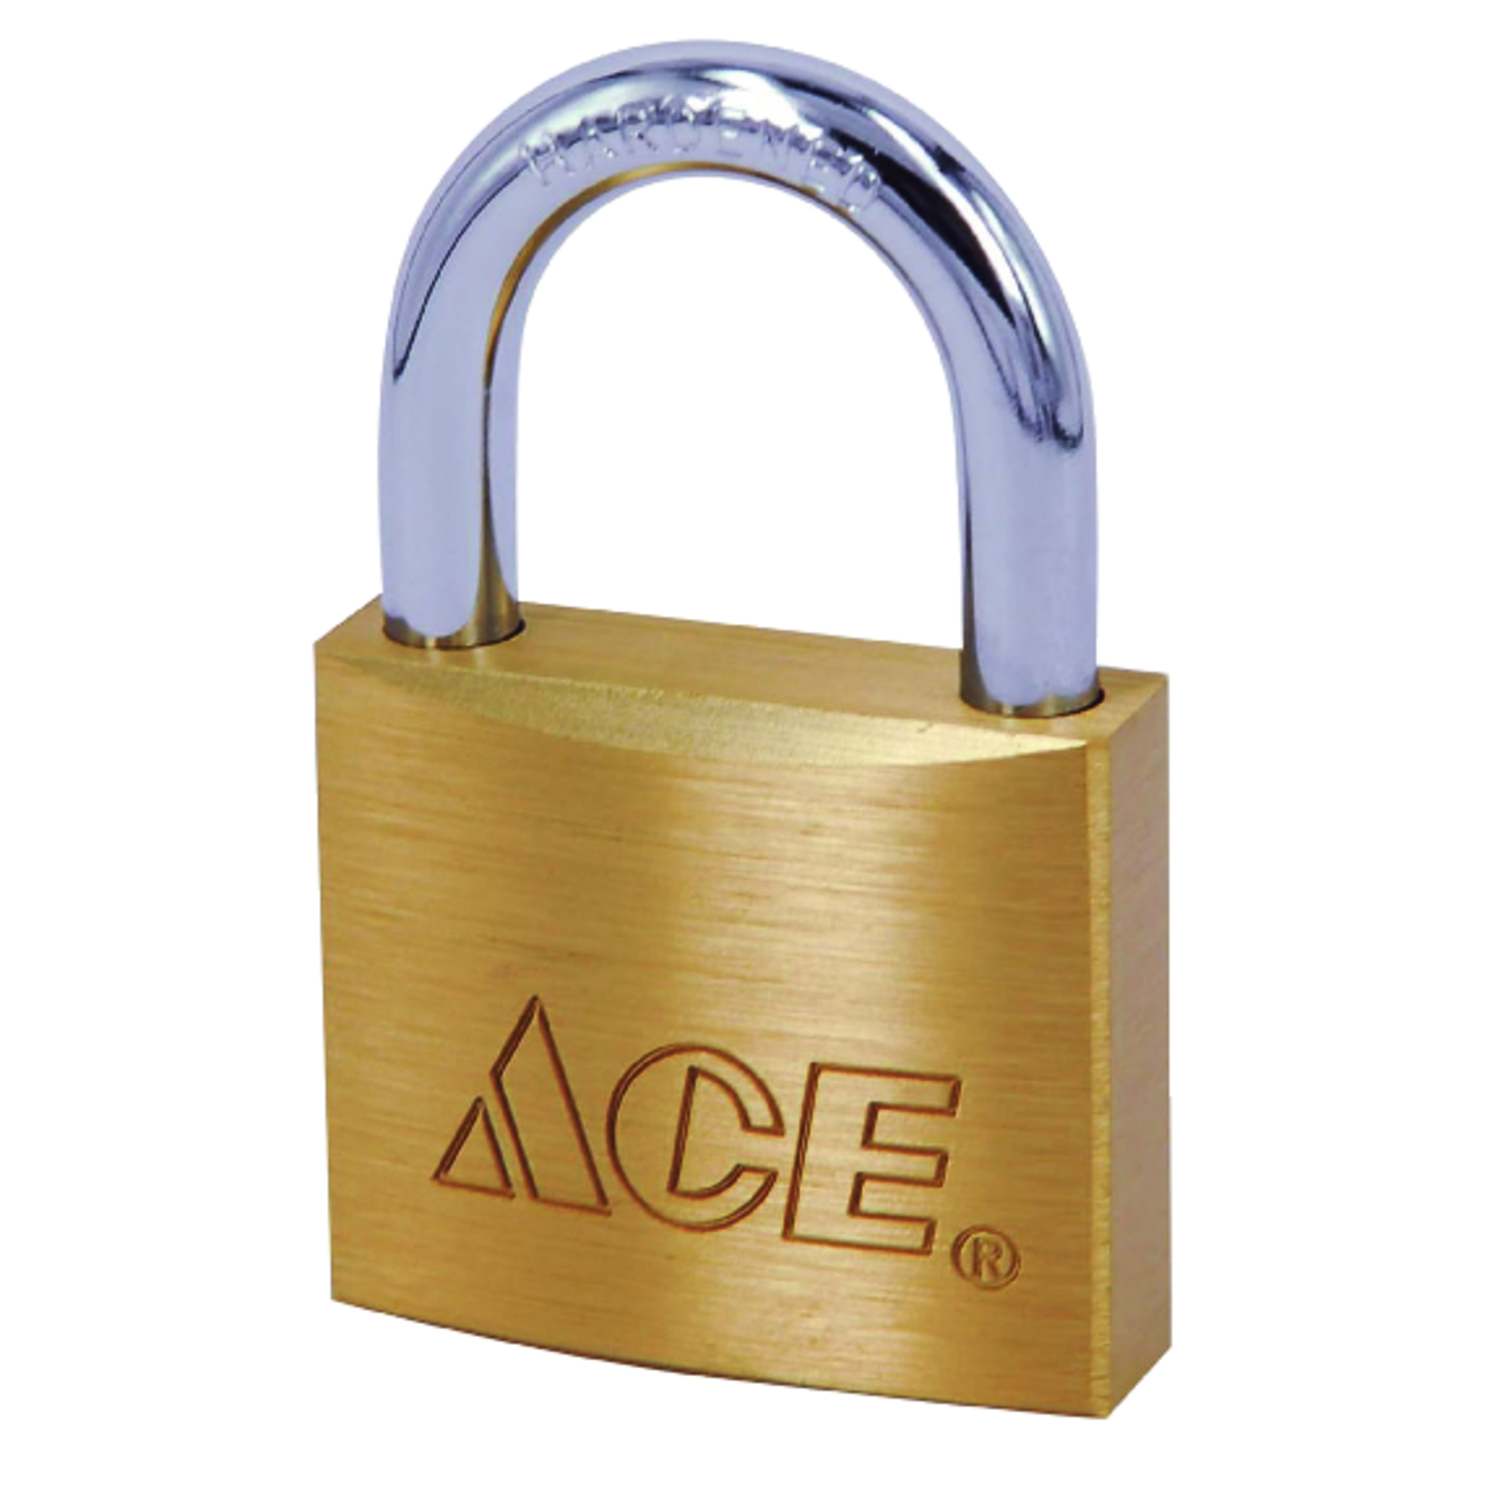 Ace  1-7/8 in. W x 1-7/16 in. H Brass  Padlock  Double Locking  Keyed Alike 1 pk